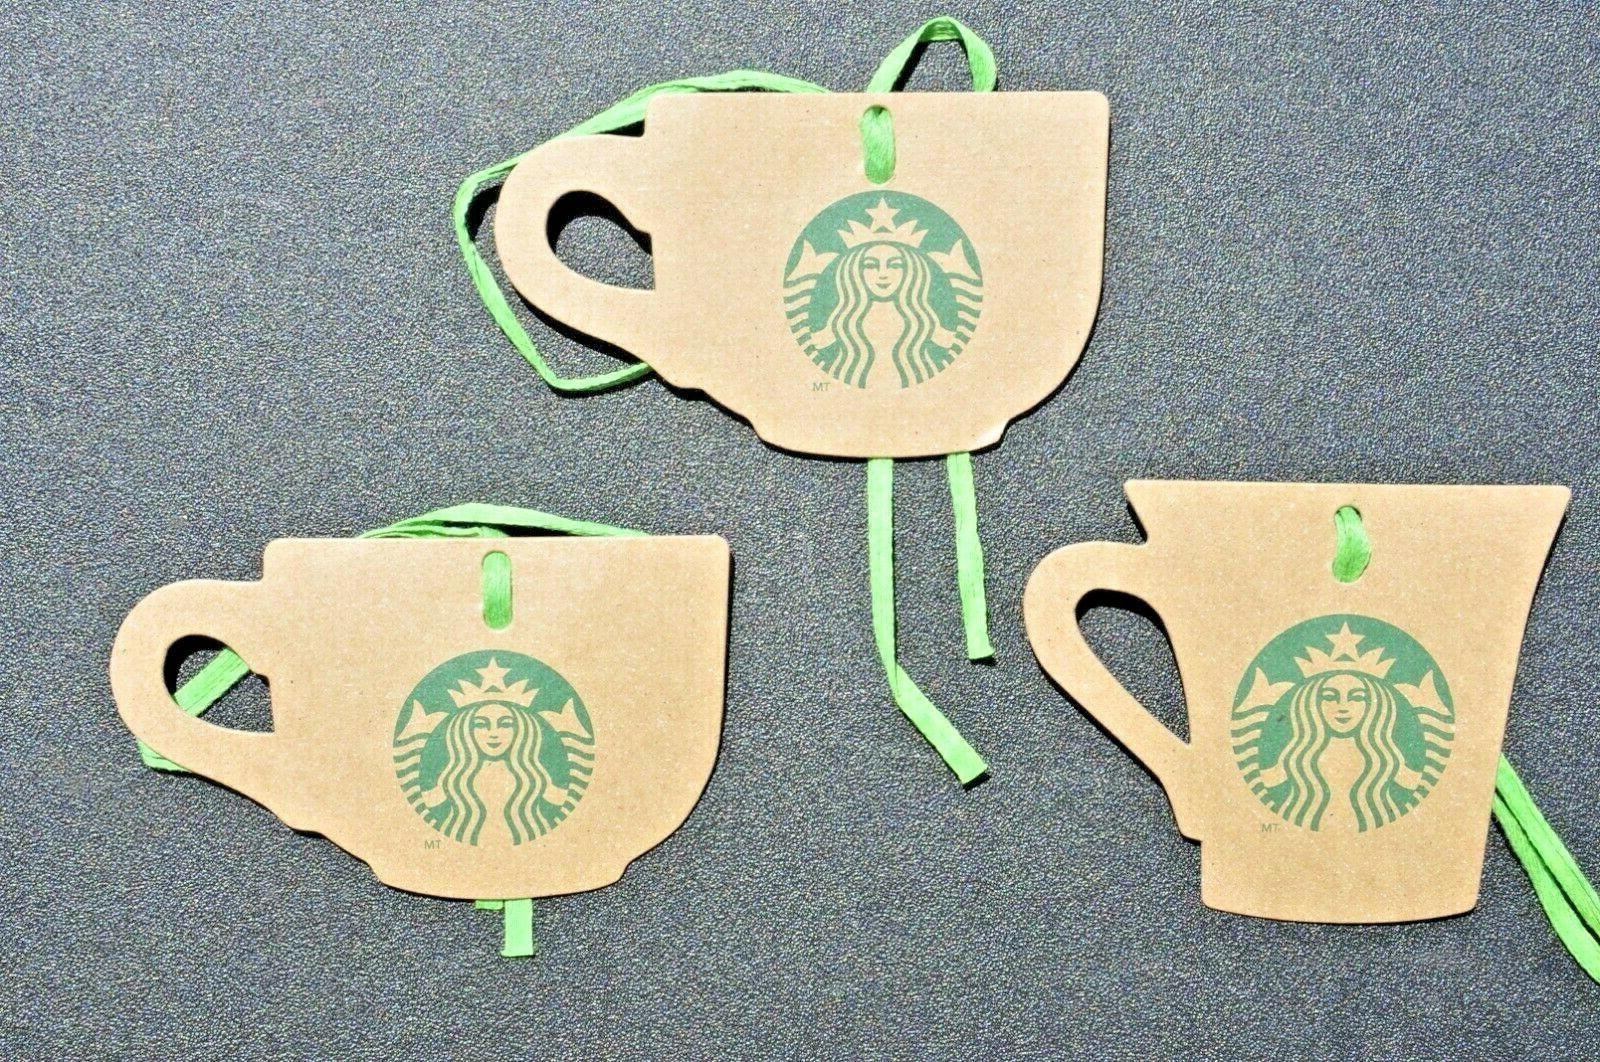 5 2012 ONLY COUPONS 3 STARBUCKS NEW